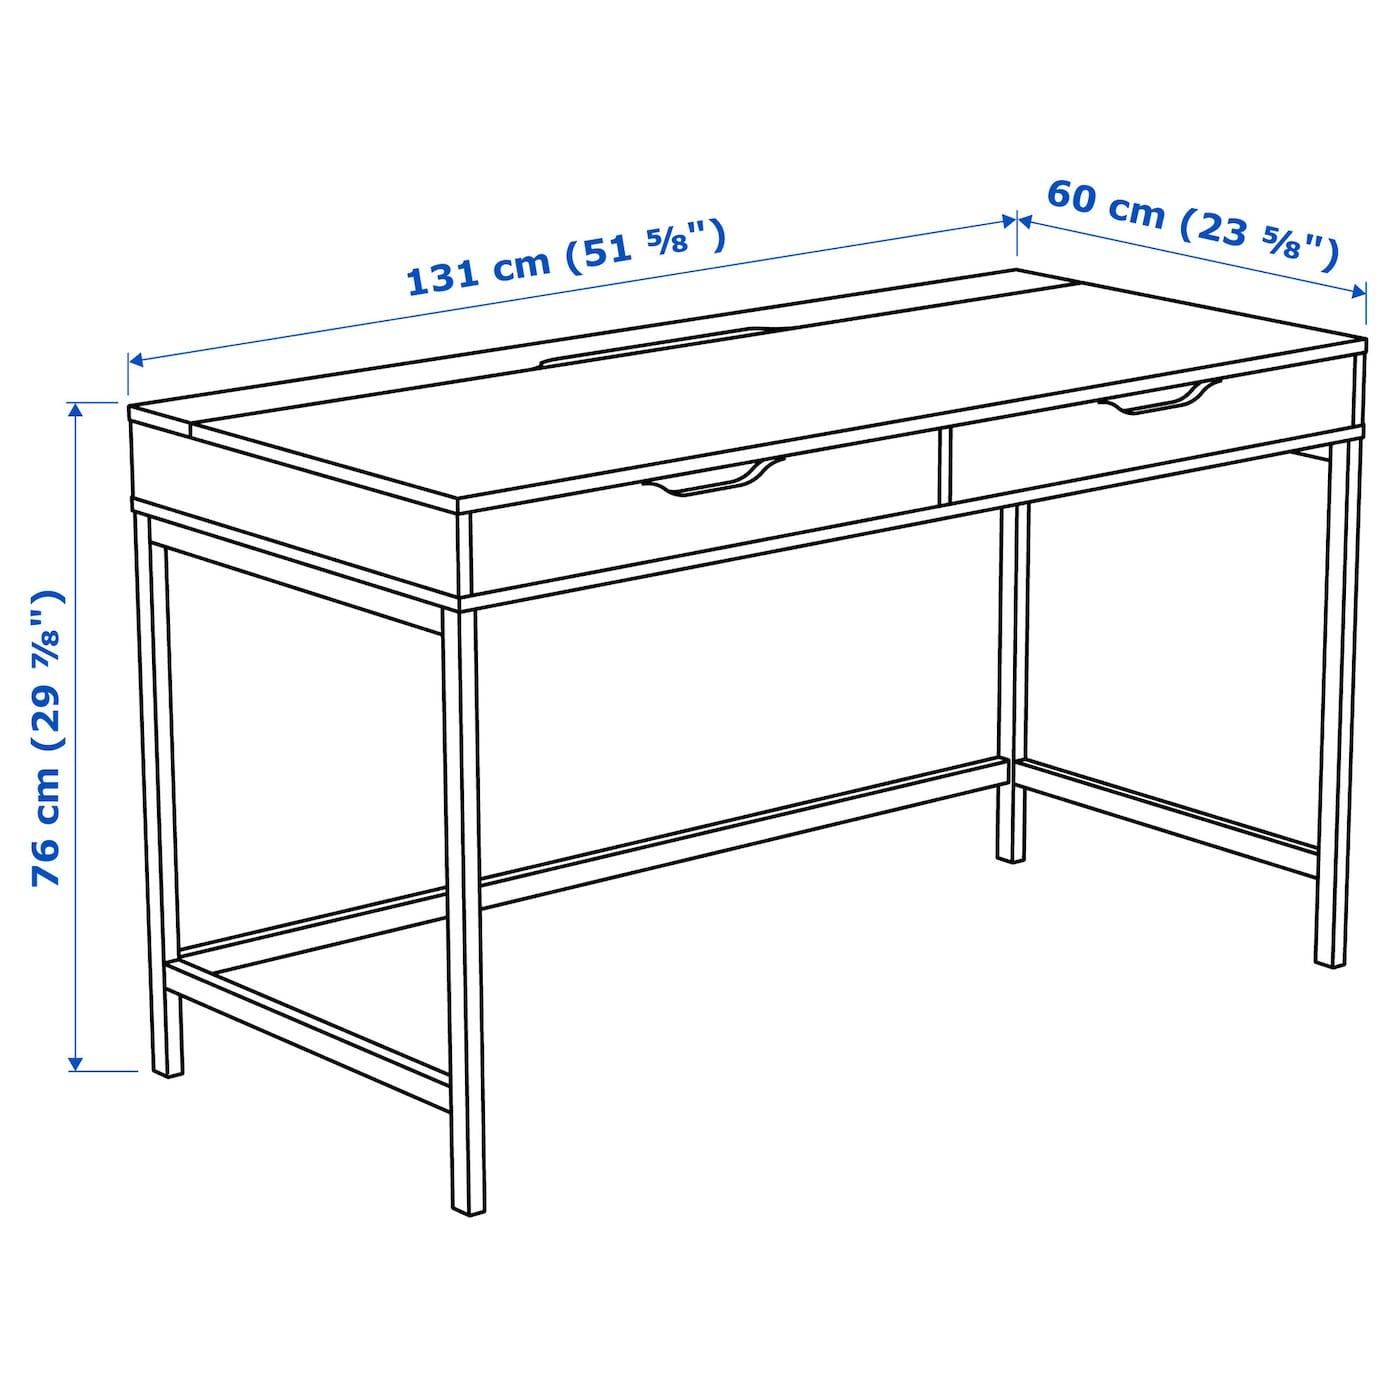 IKEA ALEX desk Drawer stops prevent the drawers from being pulled out too far.